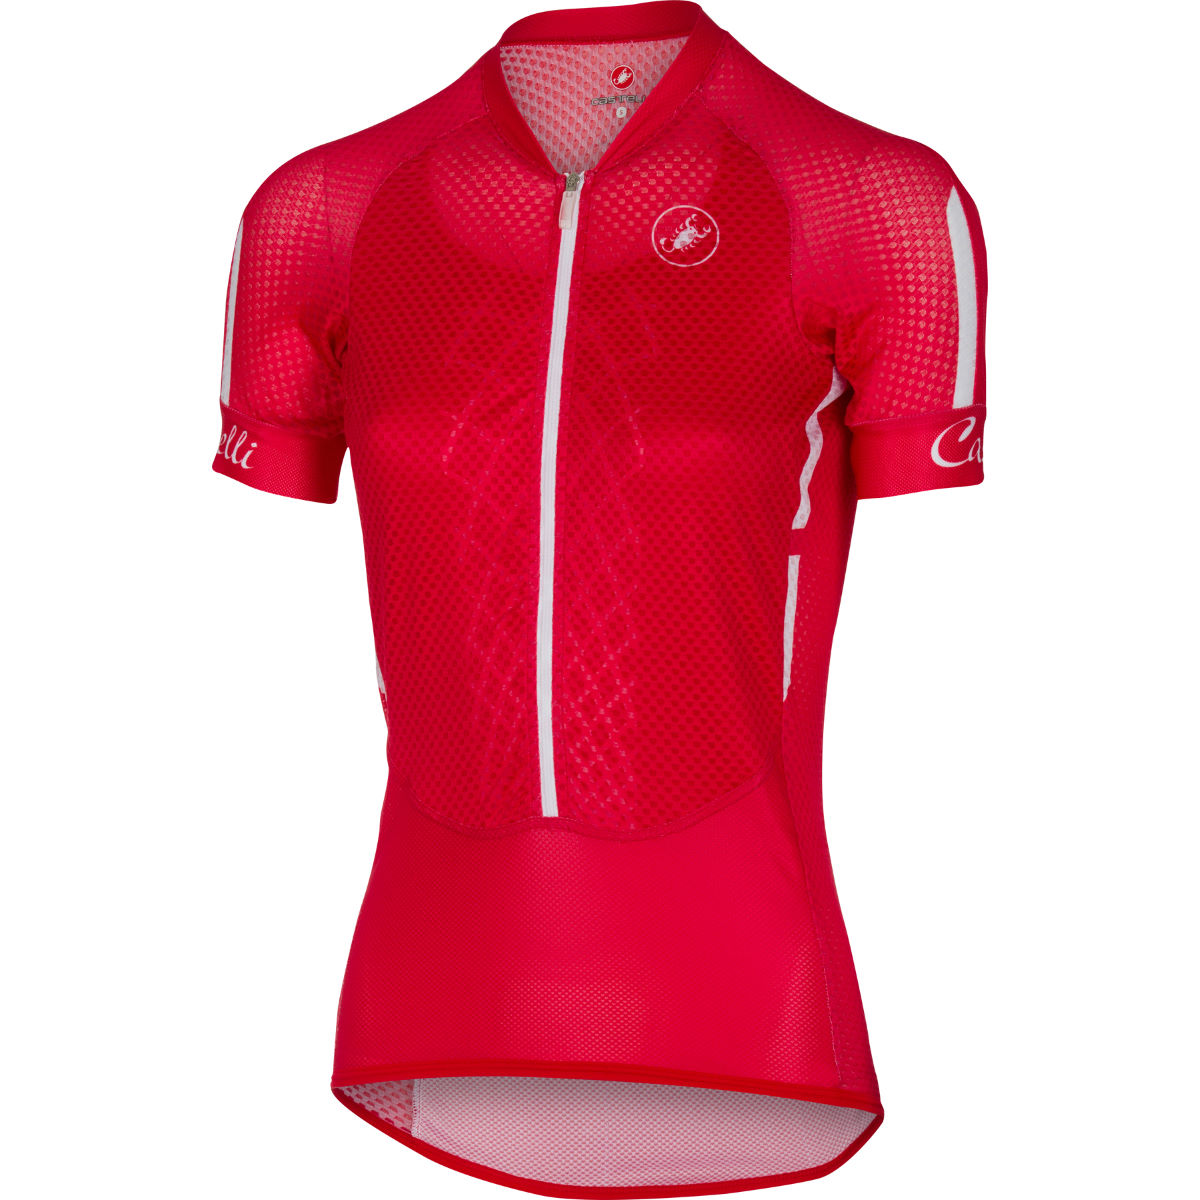 Maillot Femme Castelli Climber's - L Rouge/Blanc Maillots